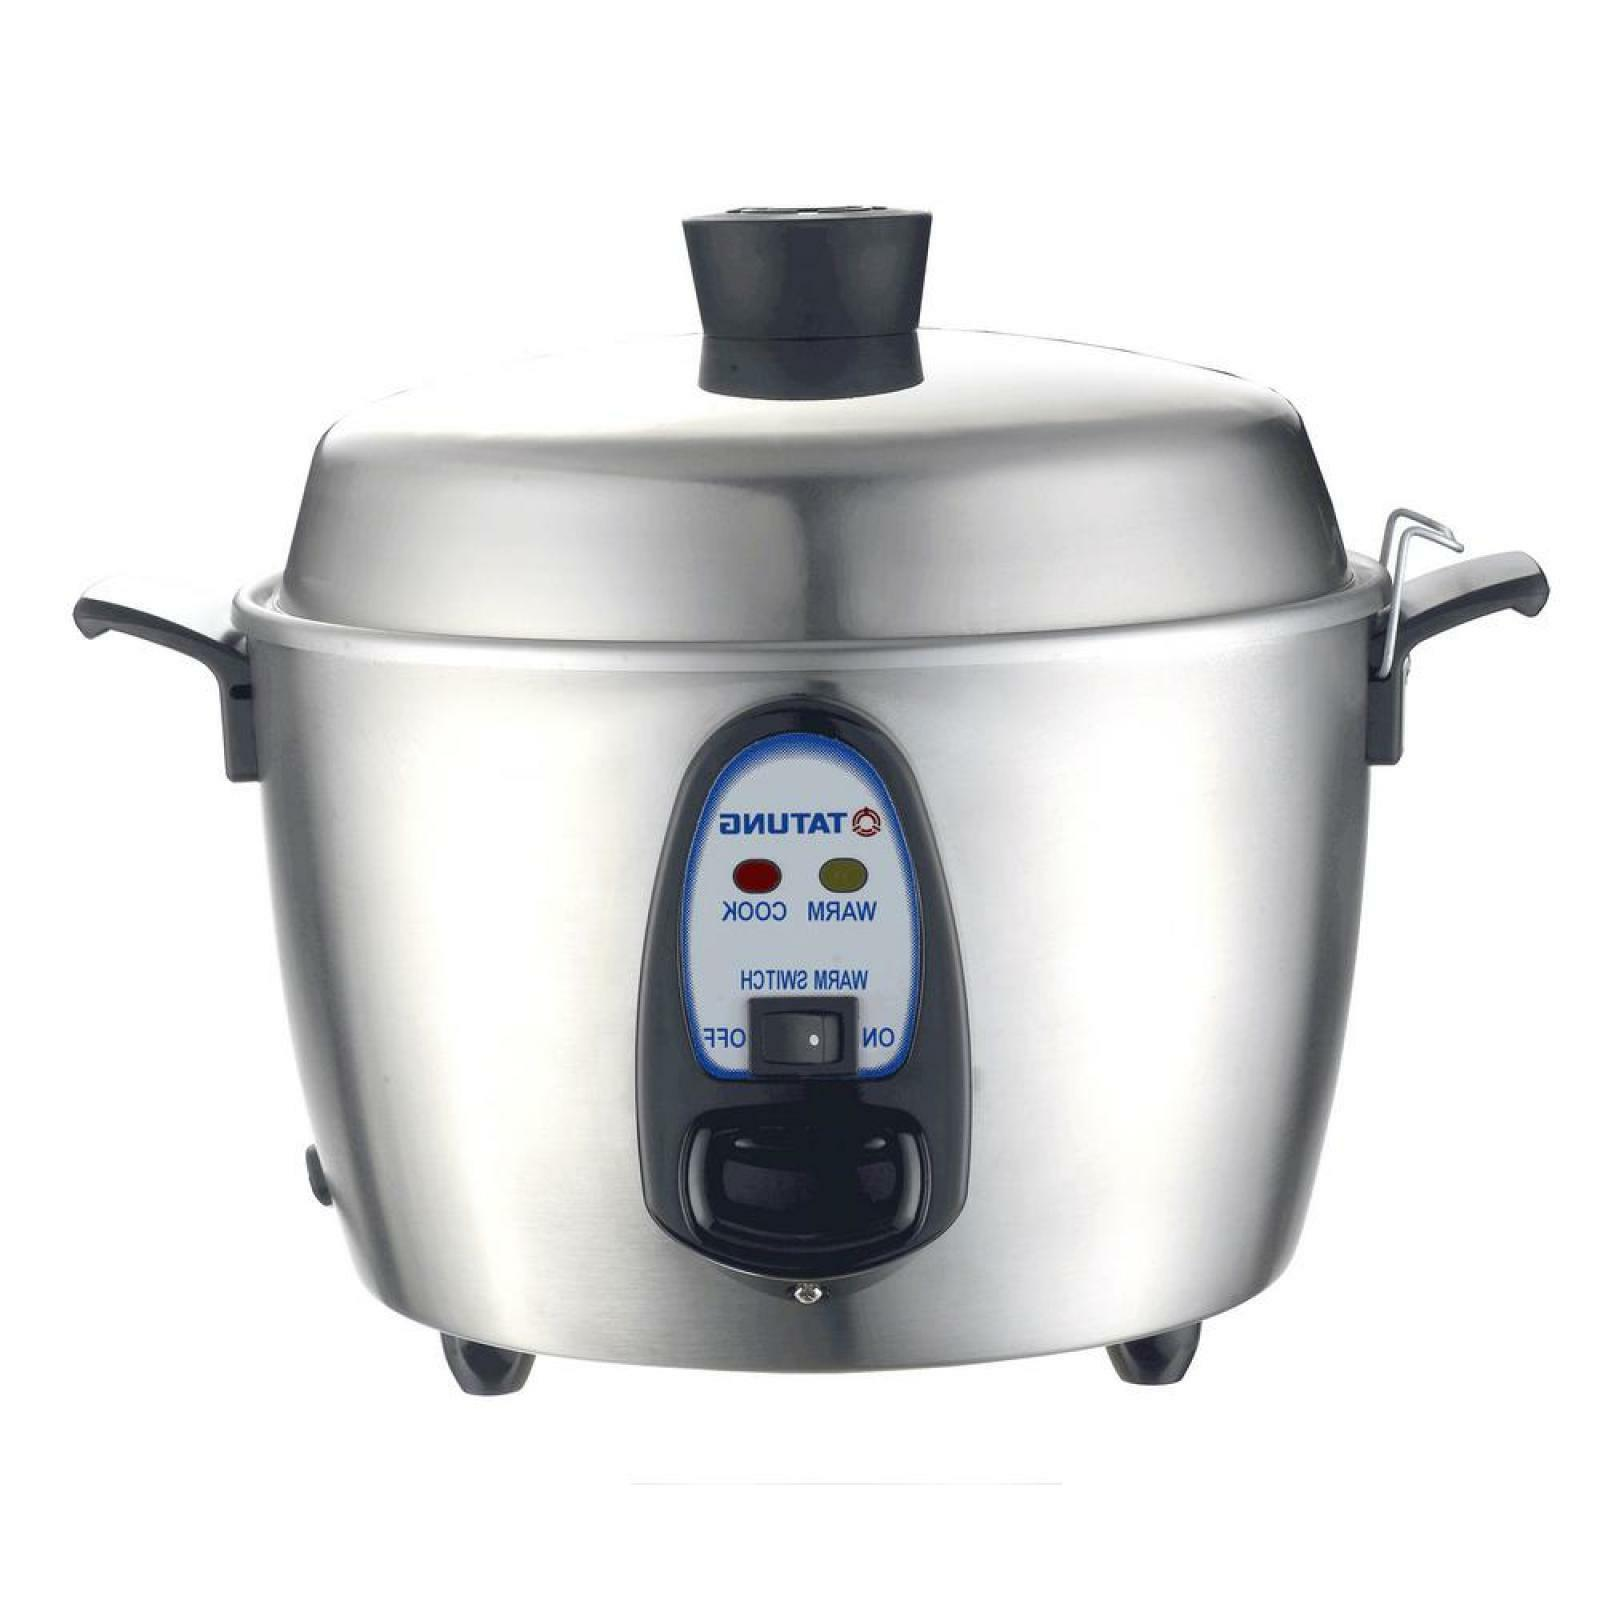 Multi Functional Pressure Cooker 11 Cup Stainless Steel Body